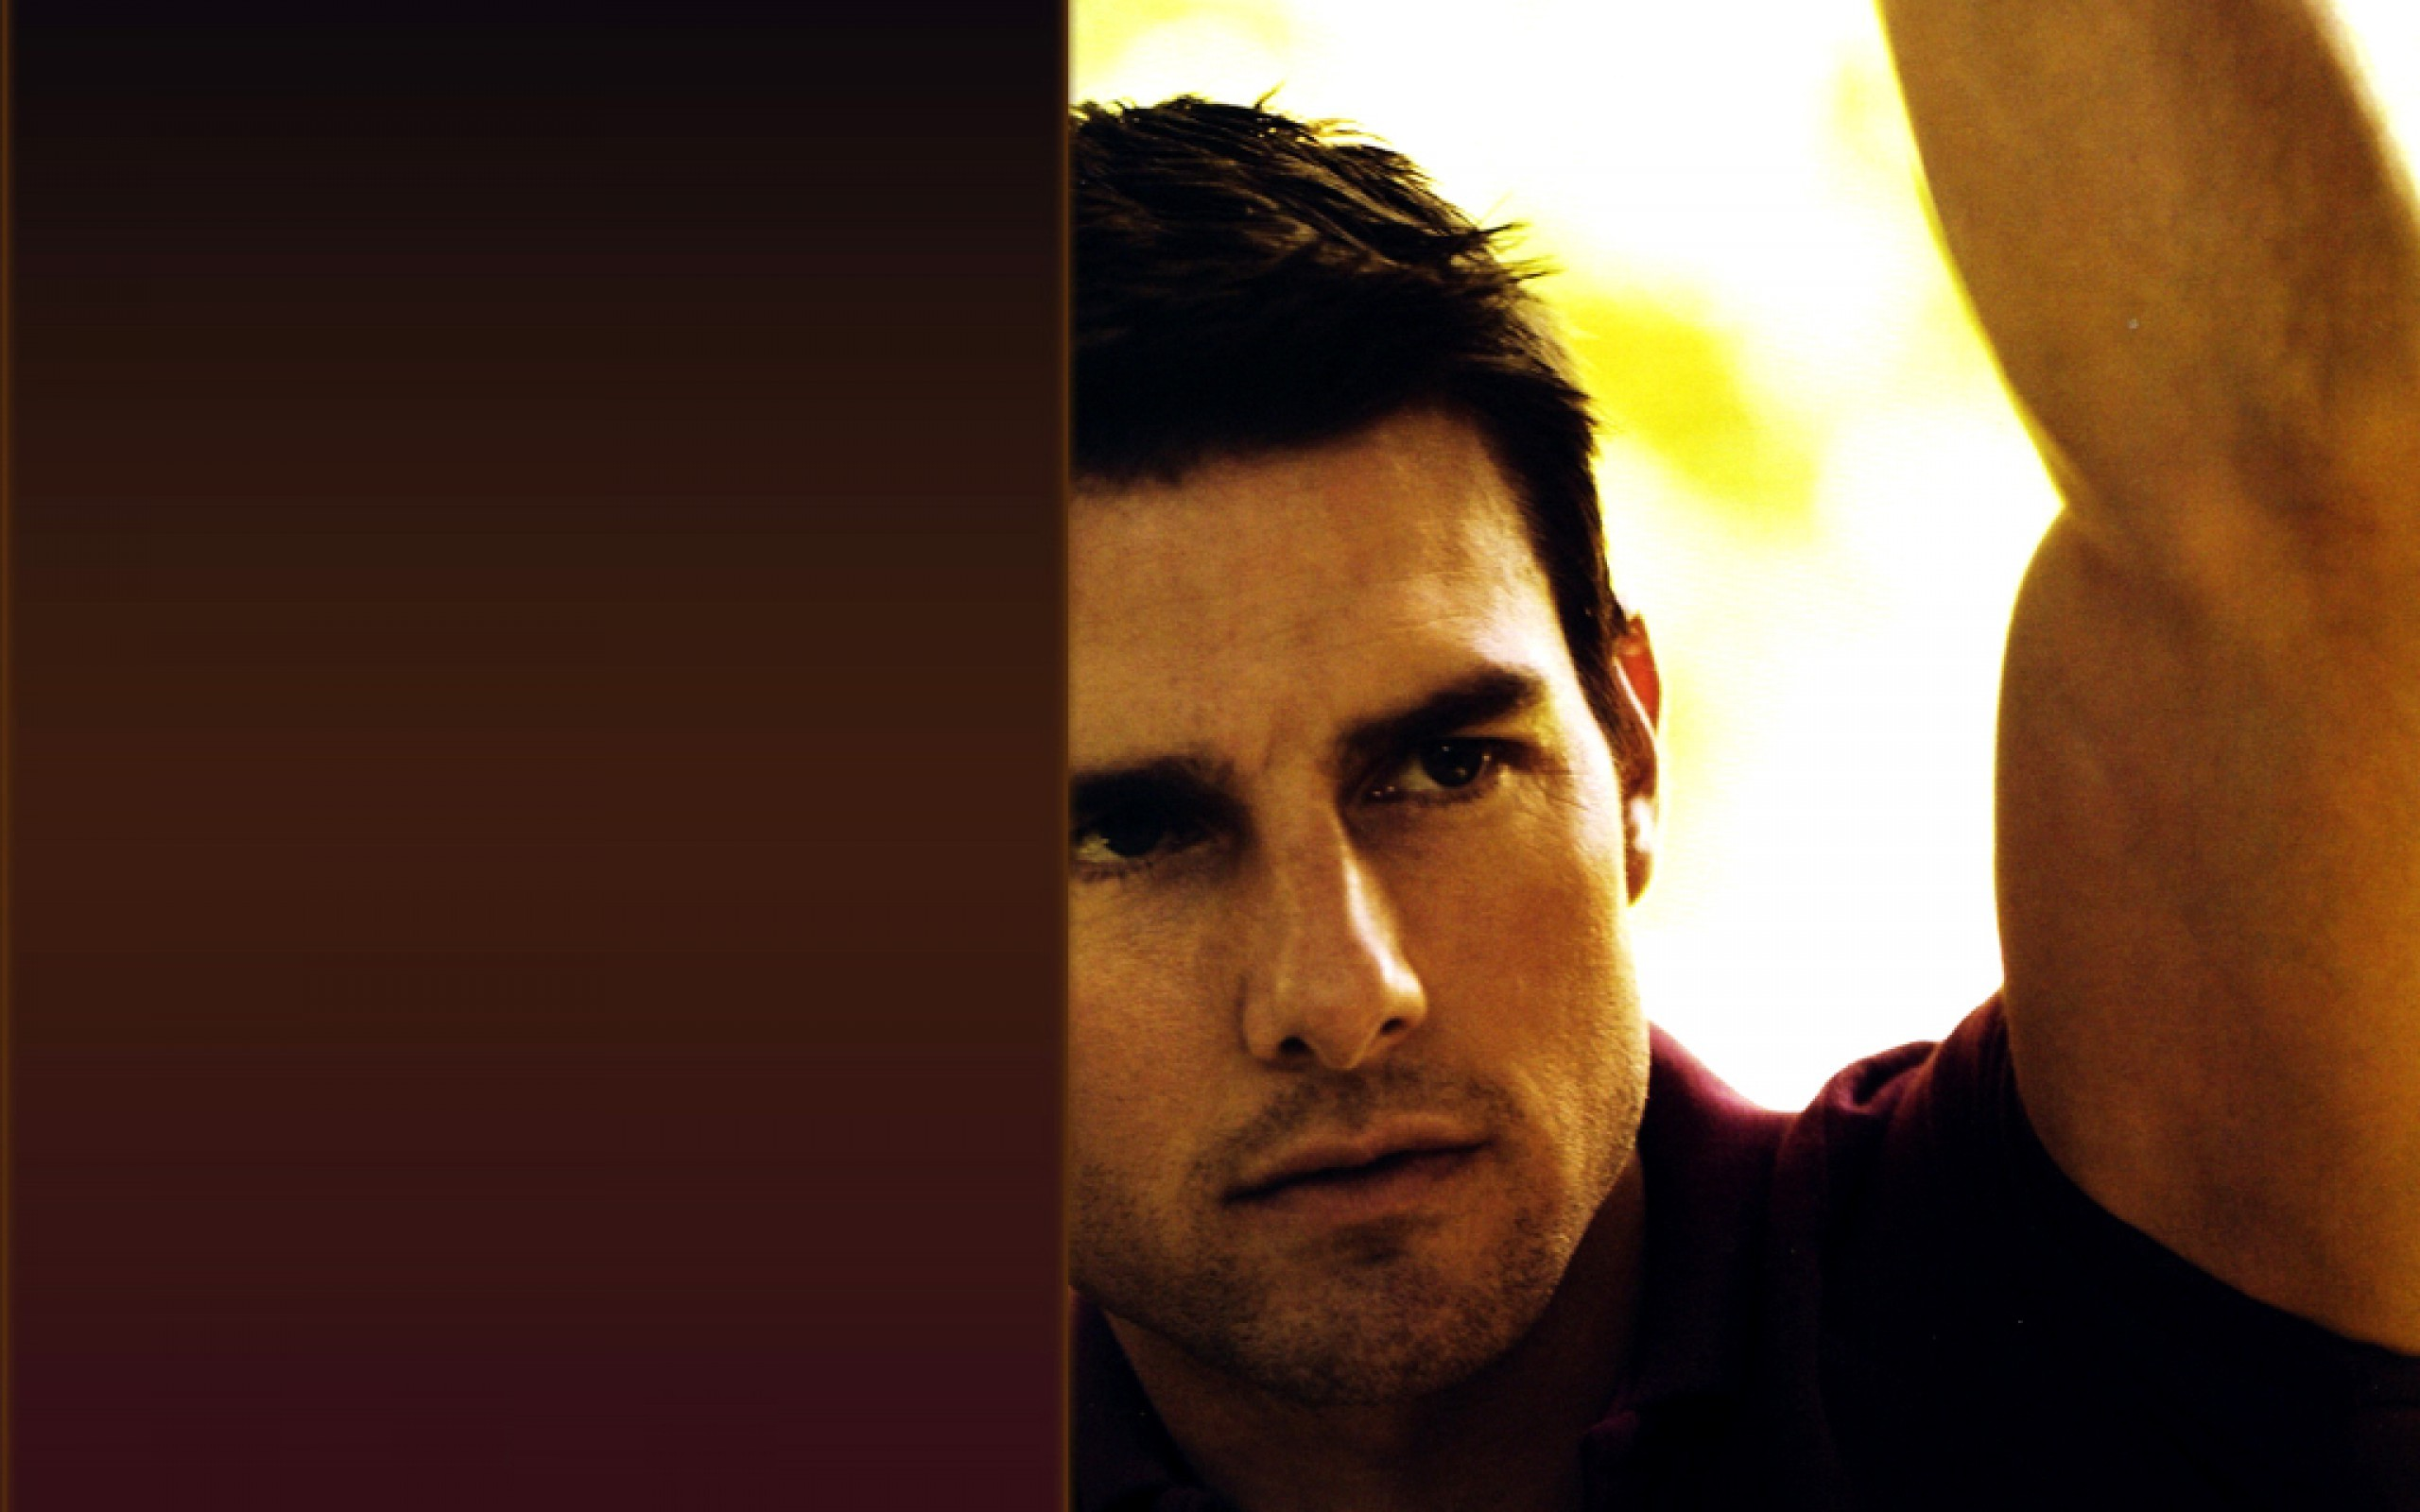 Tom Cruise Wallpaper 14